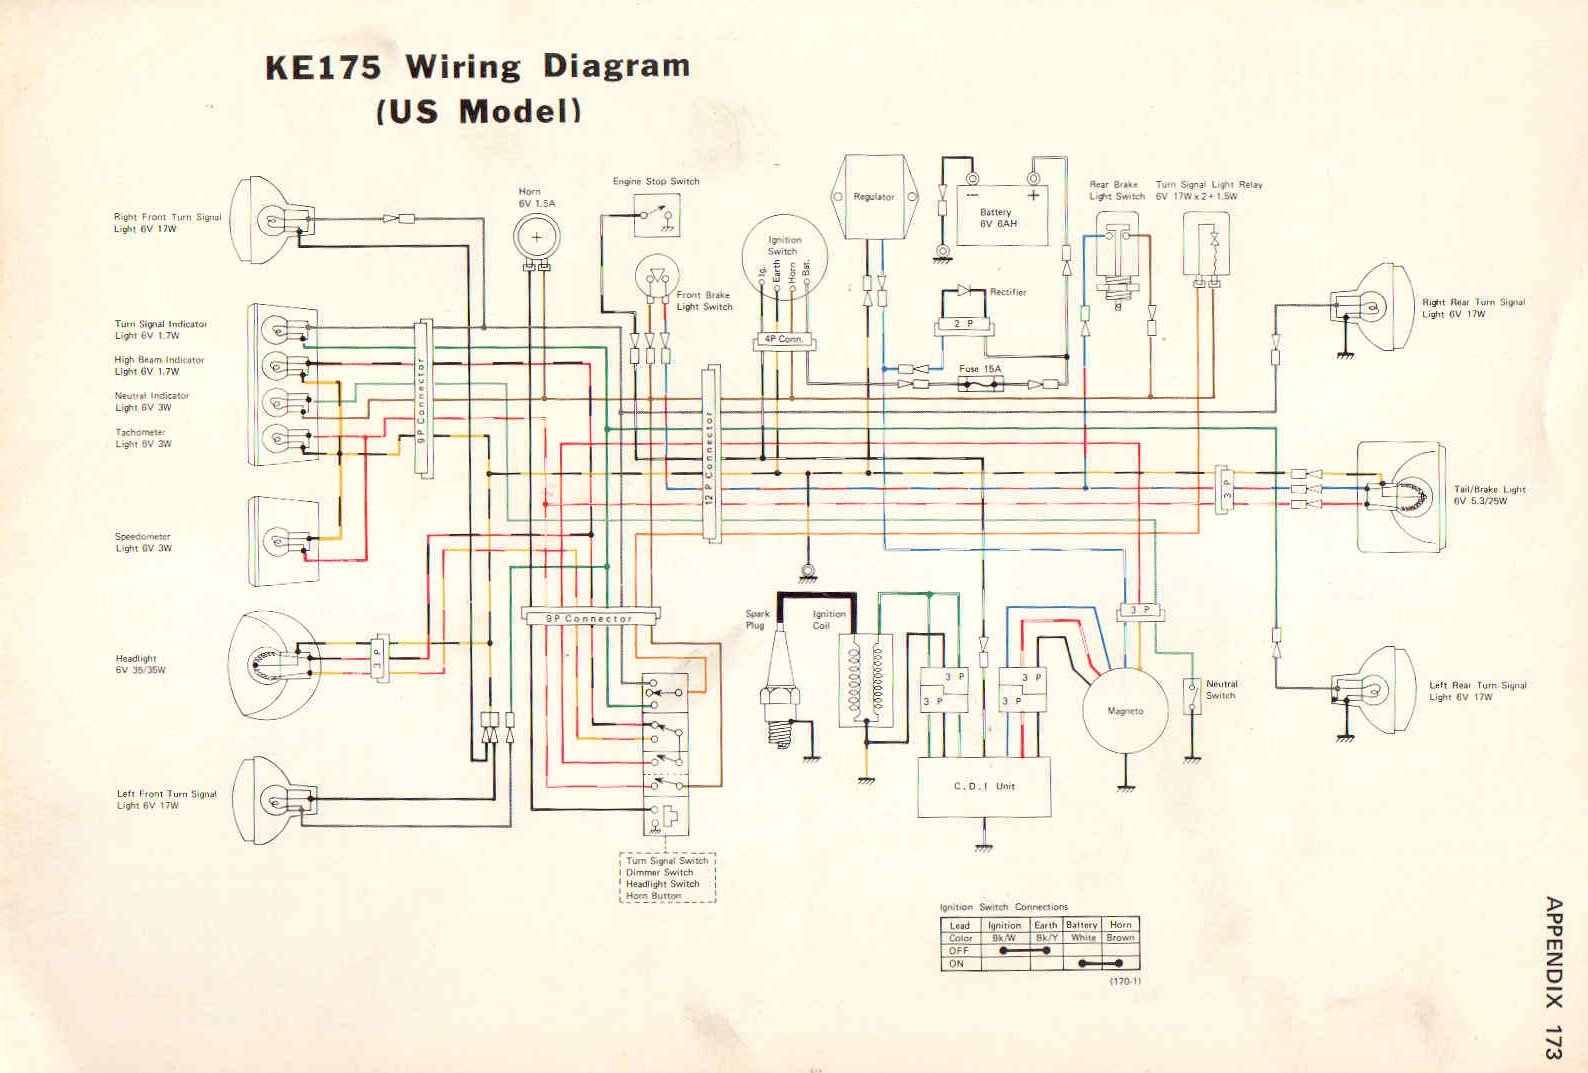 Kawasaki Ninja Wiring Diagrams Ke175 Diagram Schematics How To Motorcycle Repair 76 77 78 Rh Howtomotorcyclerepair Com